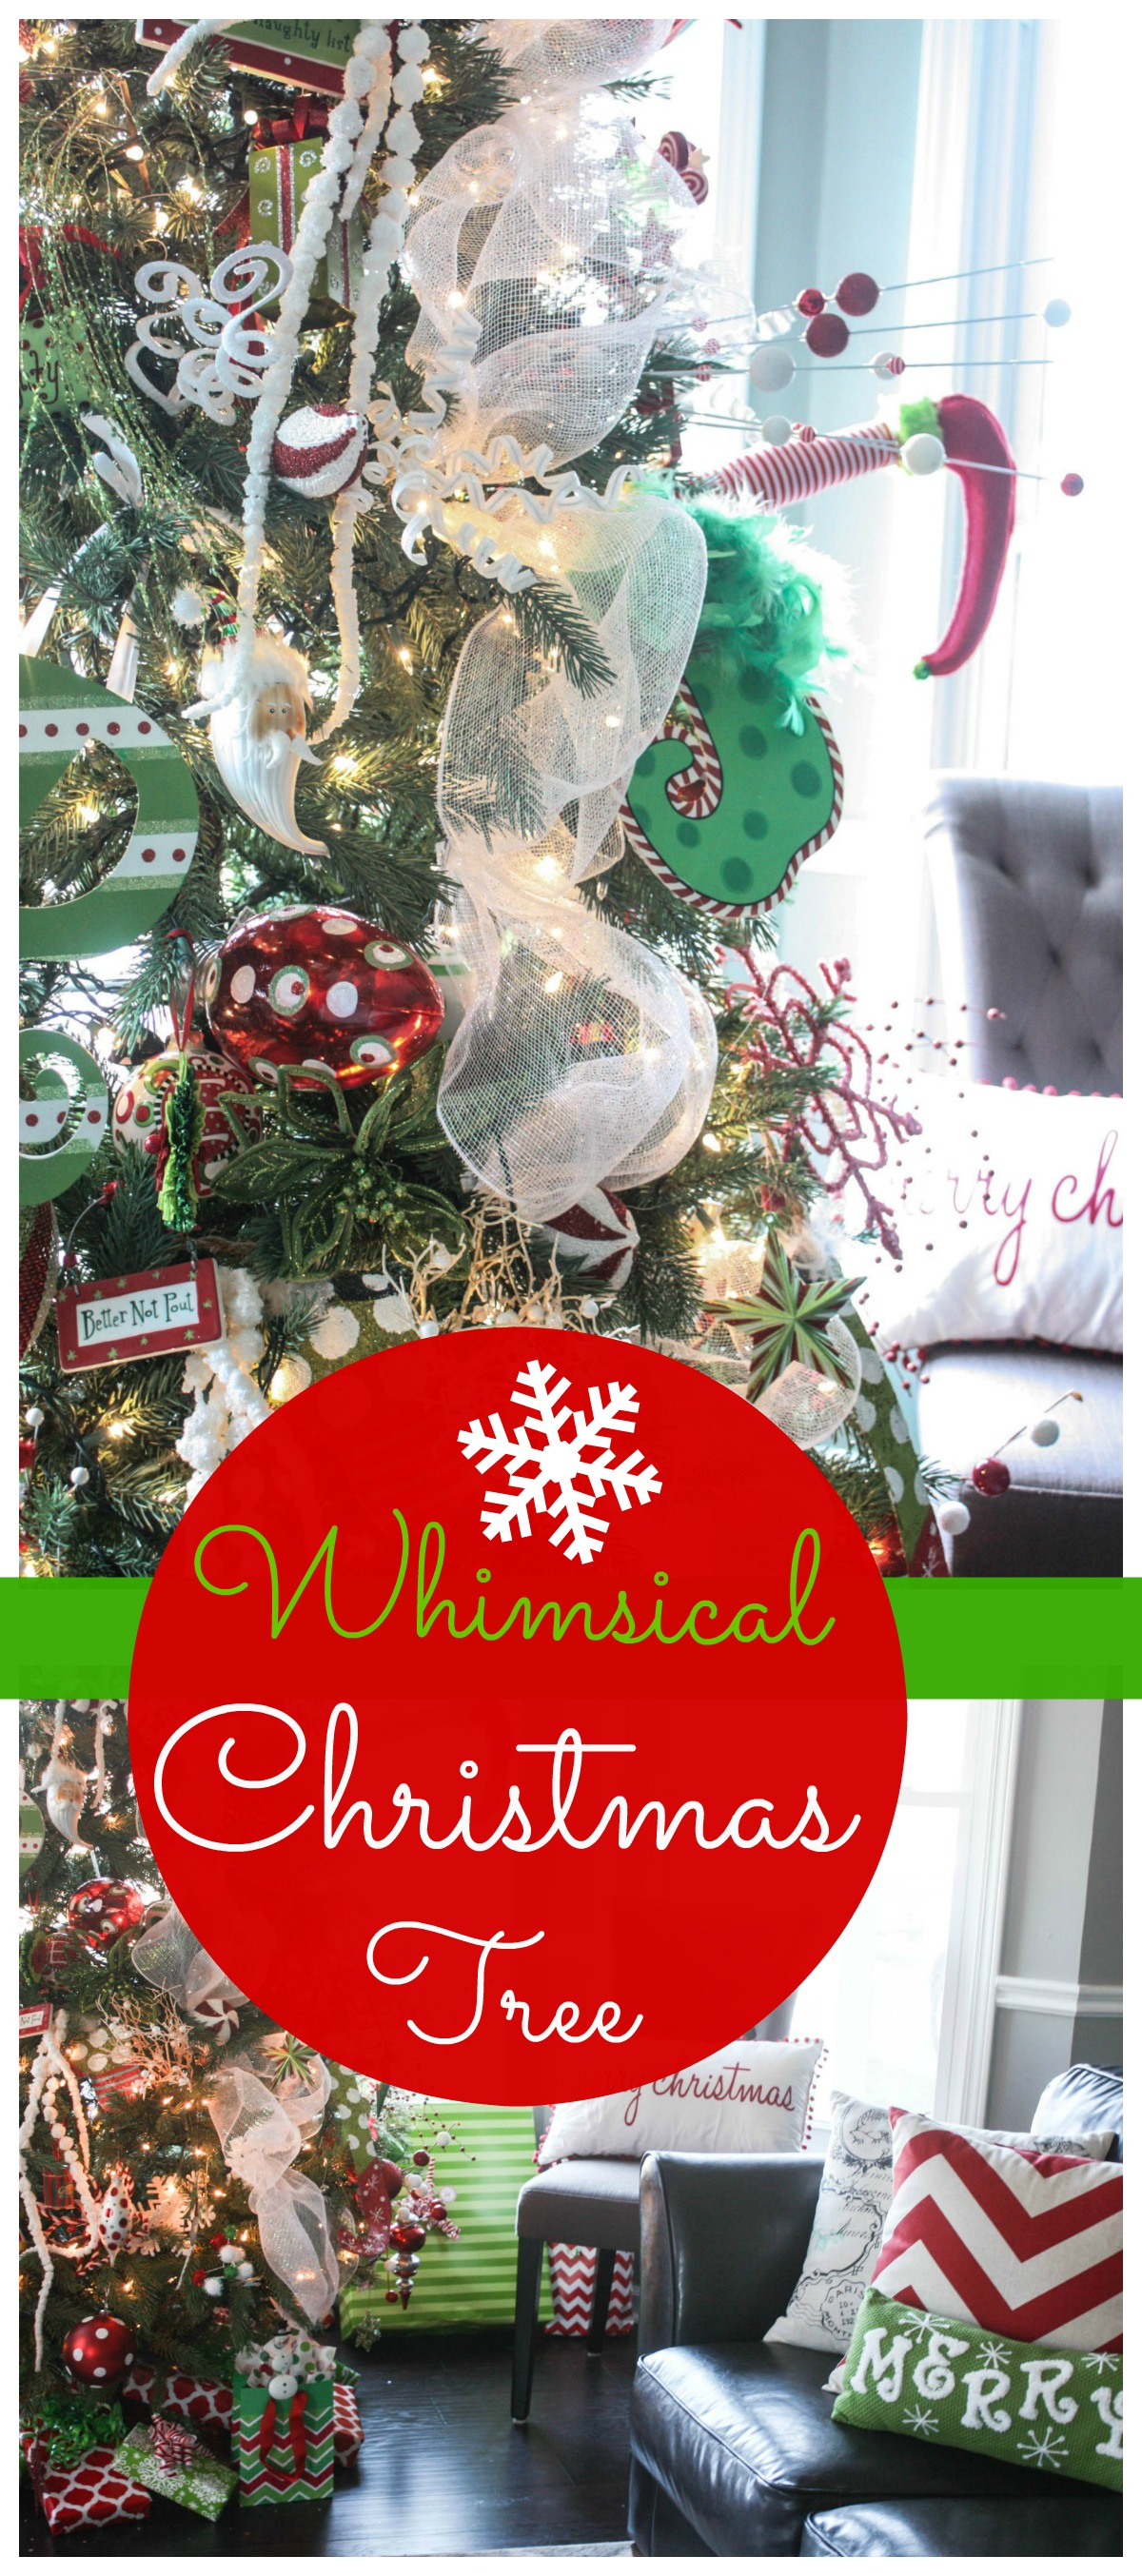 Home Renovations Online Our Whimsical Christmas Tree